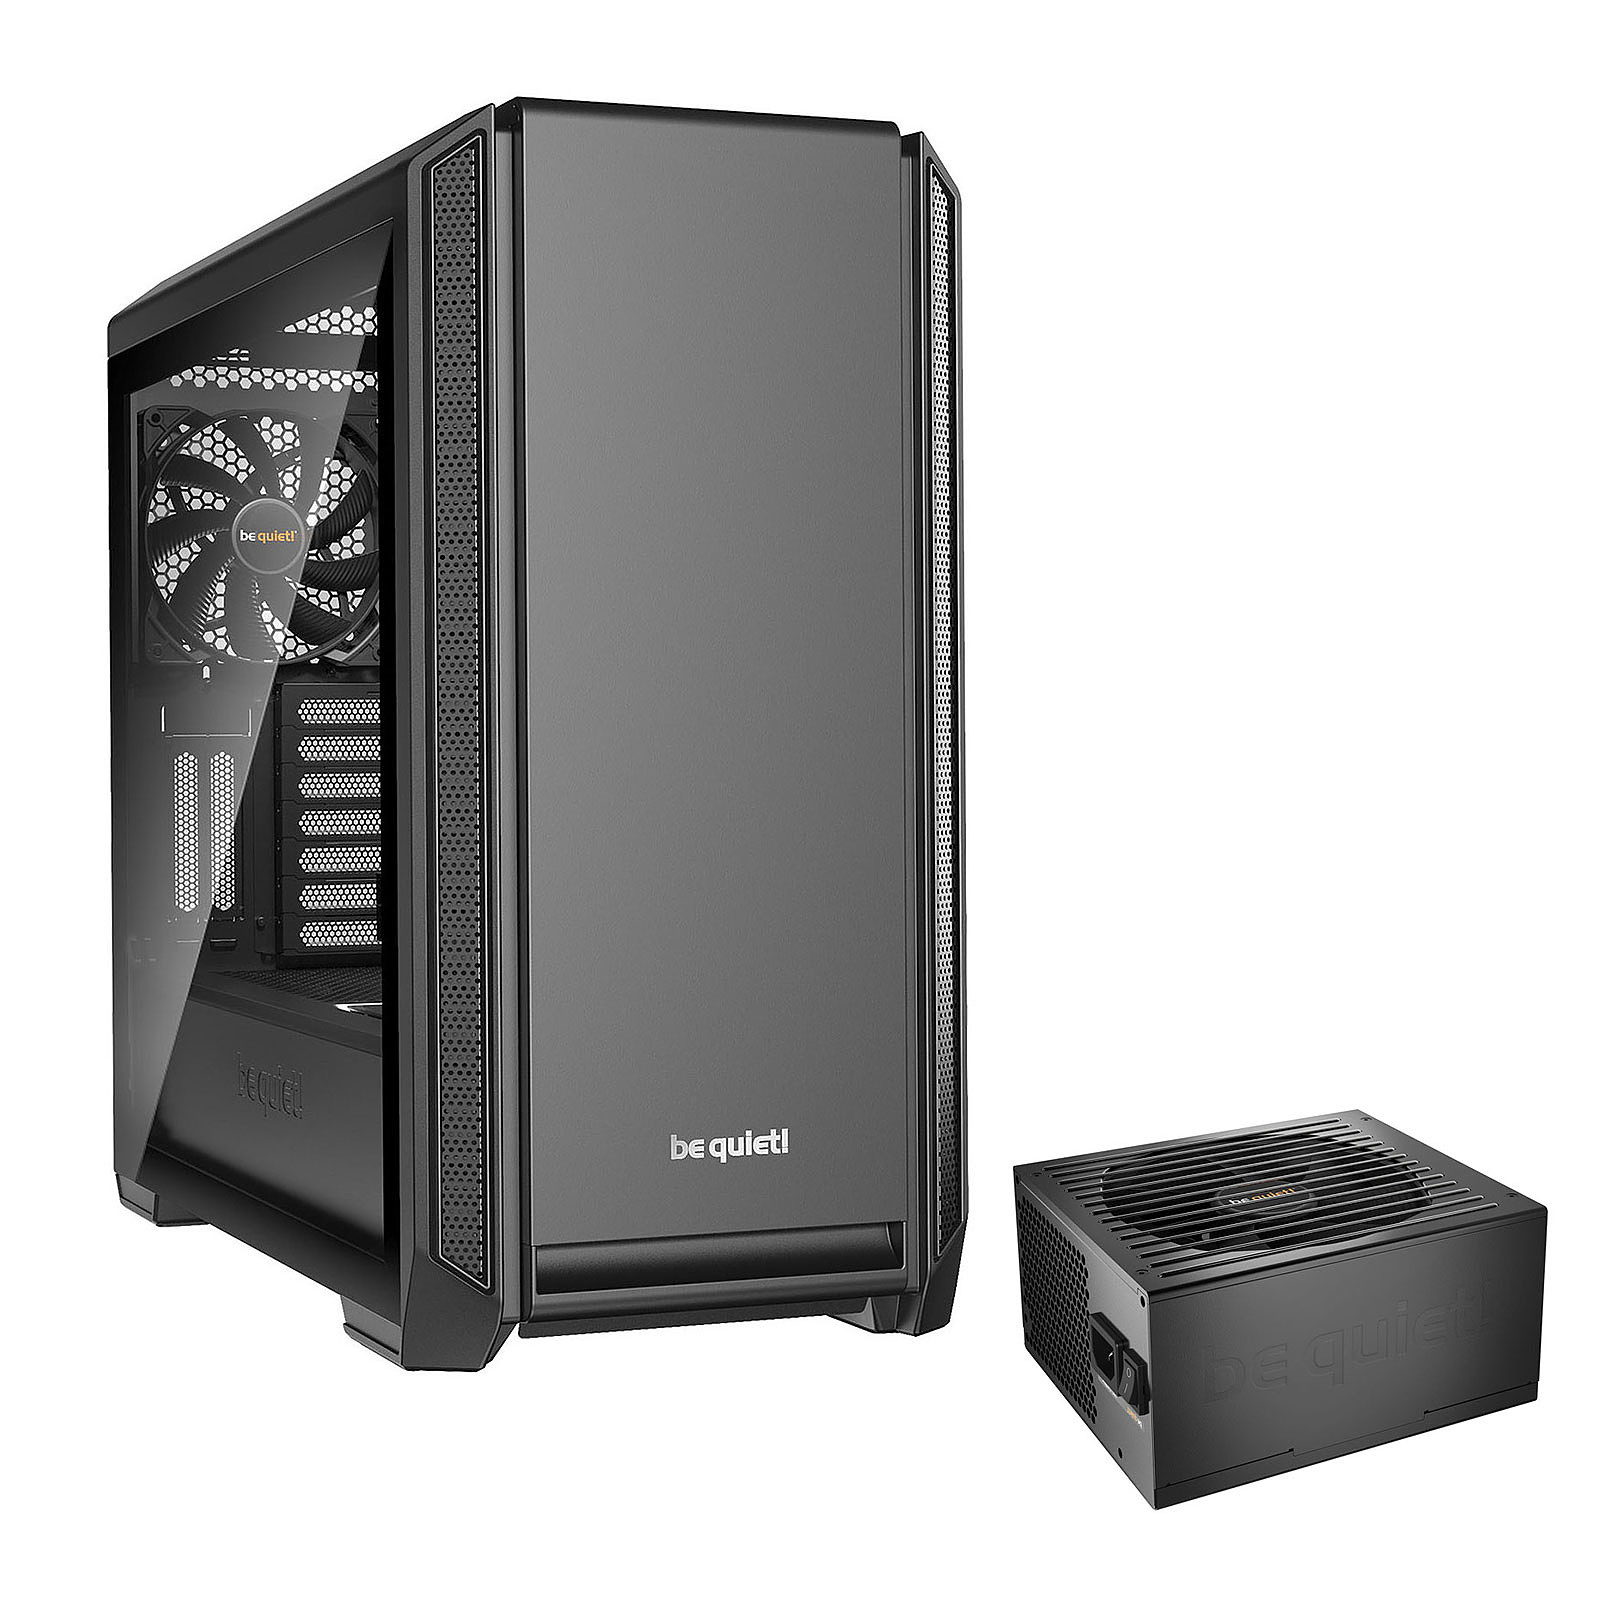 be quiet! Silent Base 601 Window (Noir) + be quiet! Straight Power 11 650W 80PLUS Gold